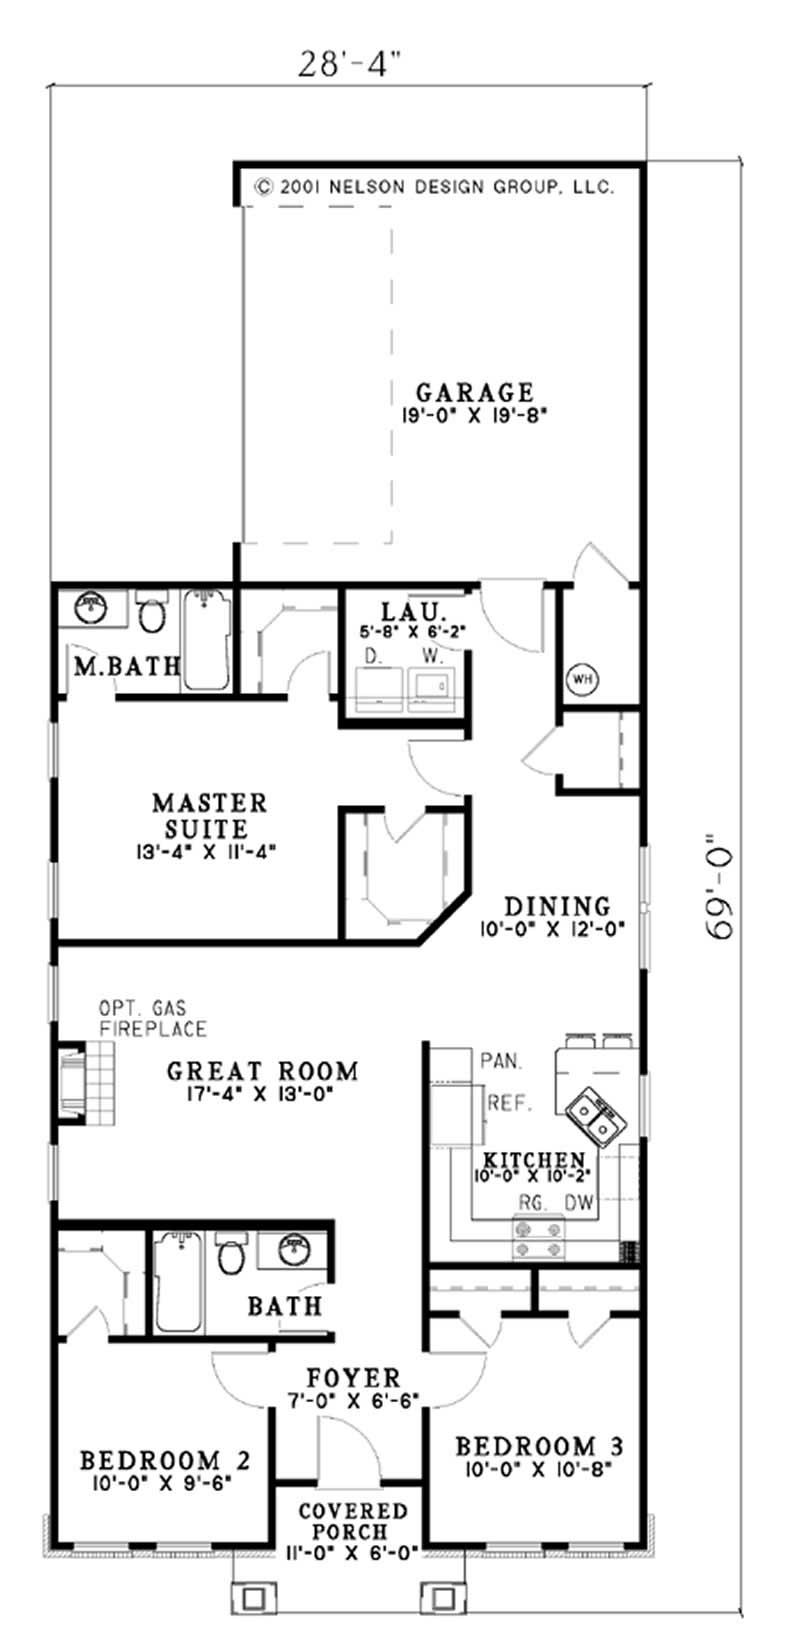 Small arts and crafts house plans home design ndg626 4062 for Arts crafts house plans